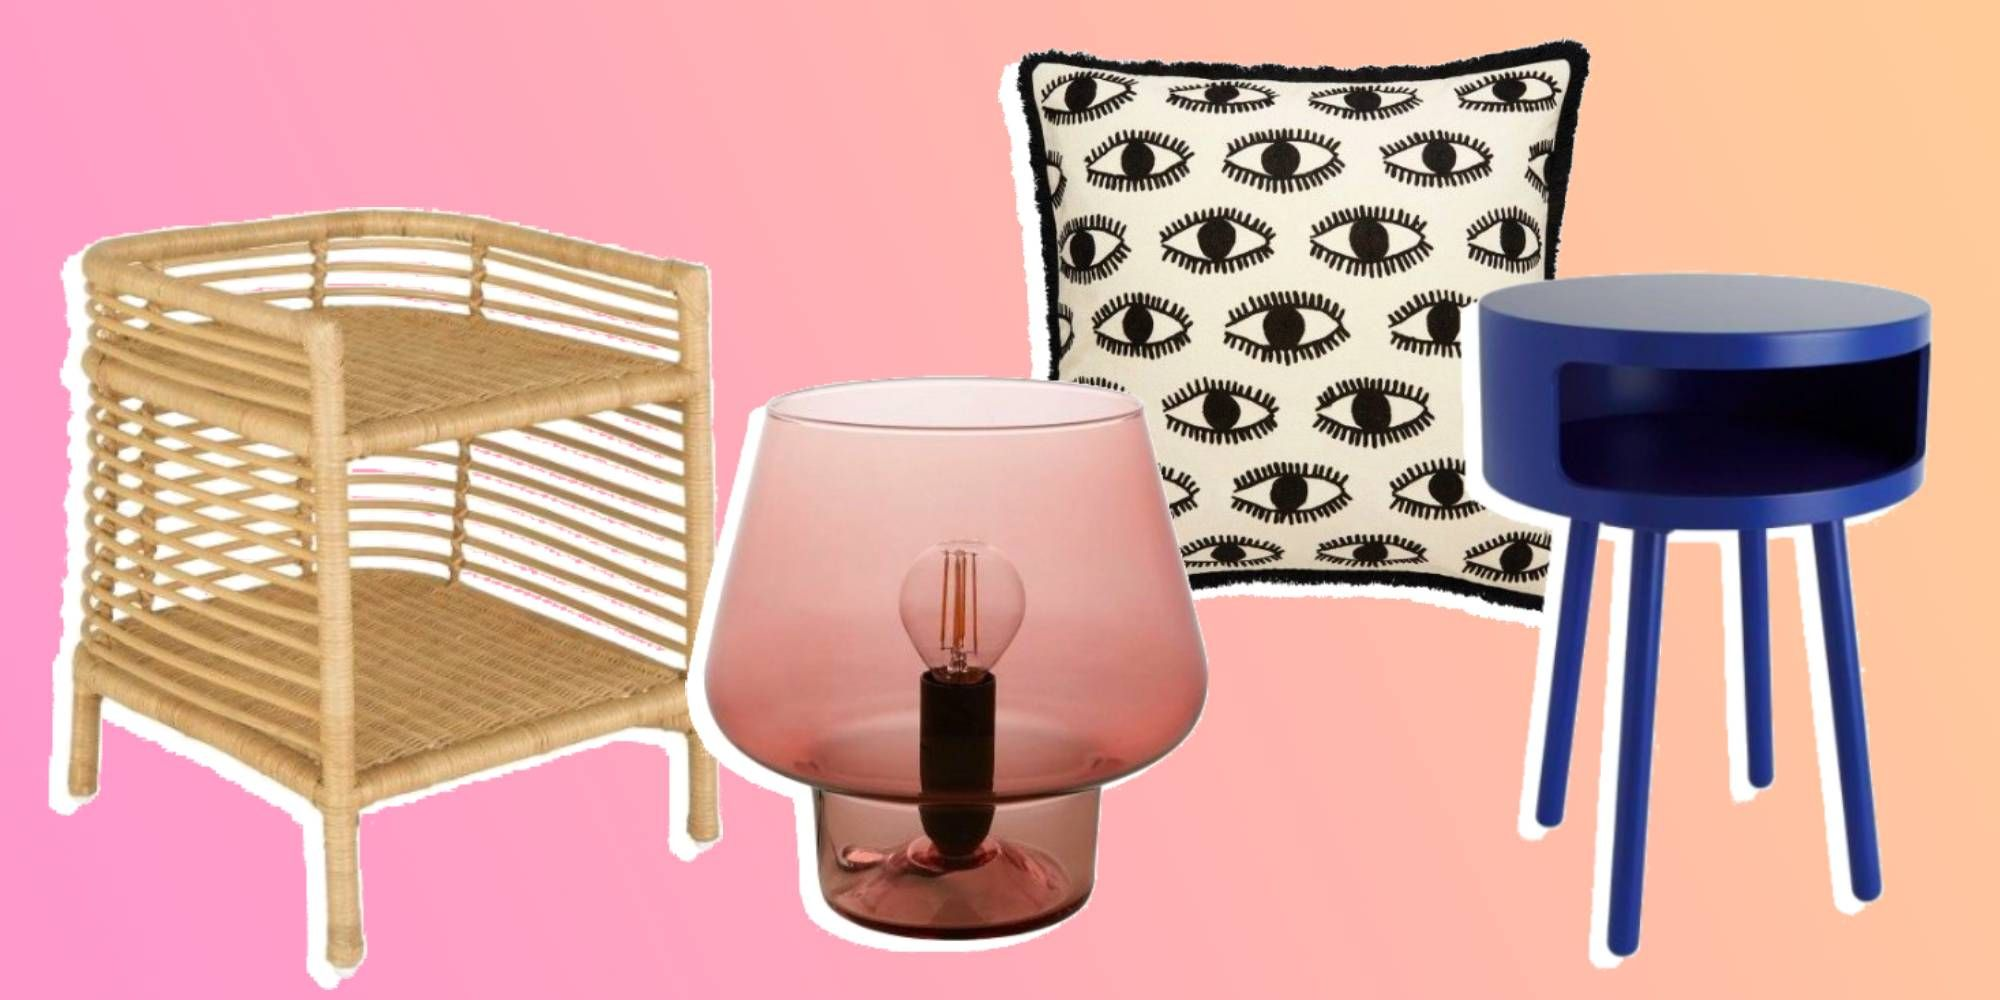 Habitat has a 25% sale on right now! Here are 20 things to shop